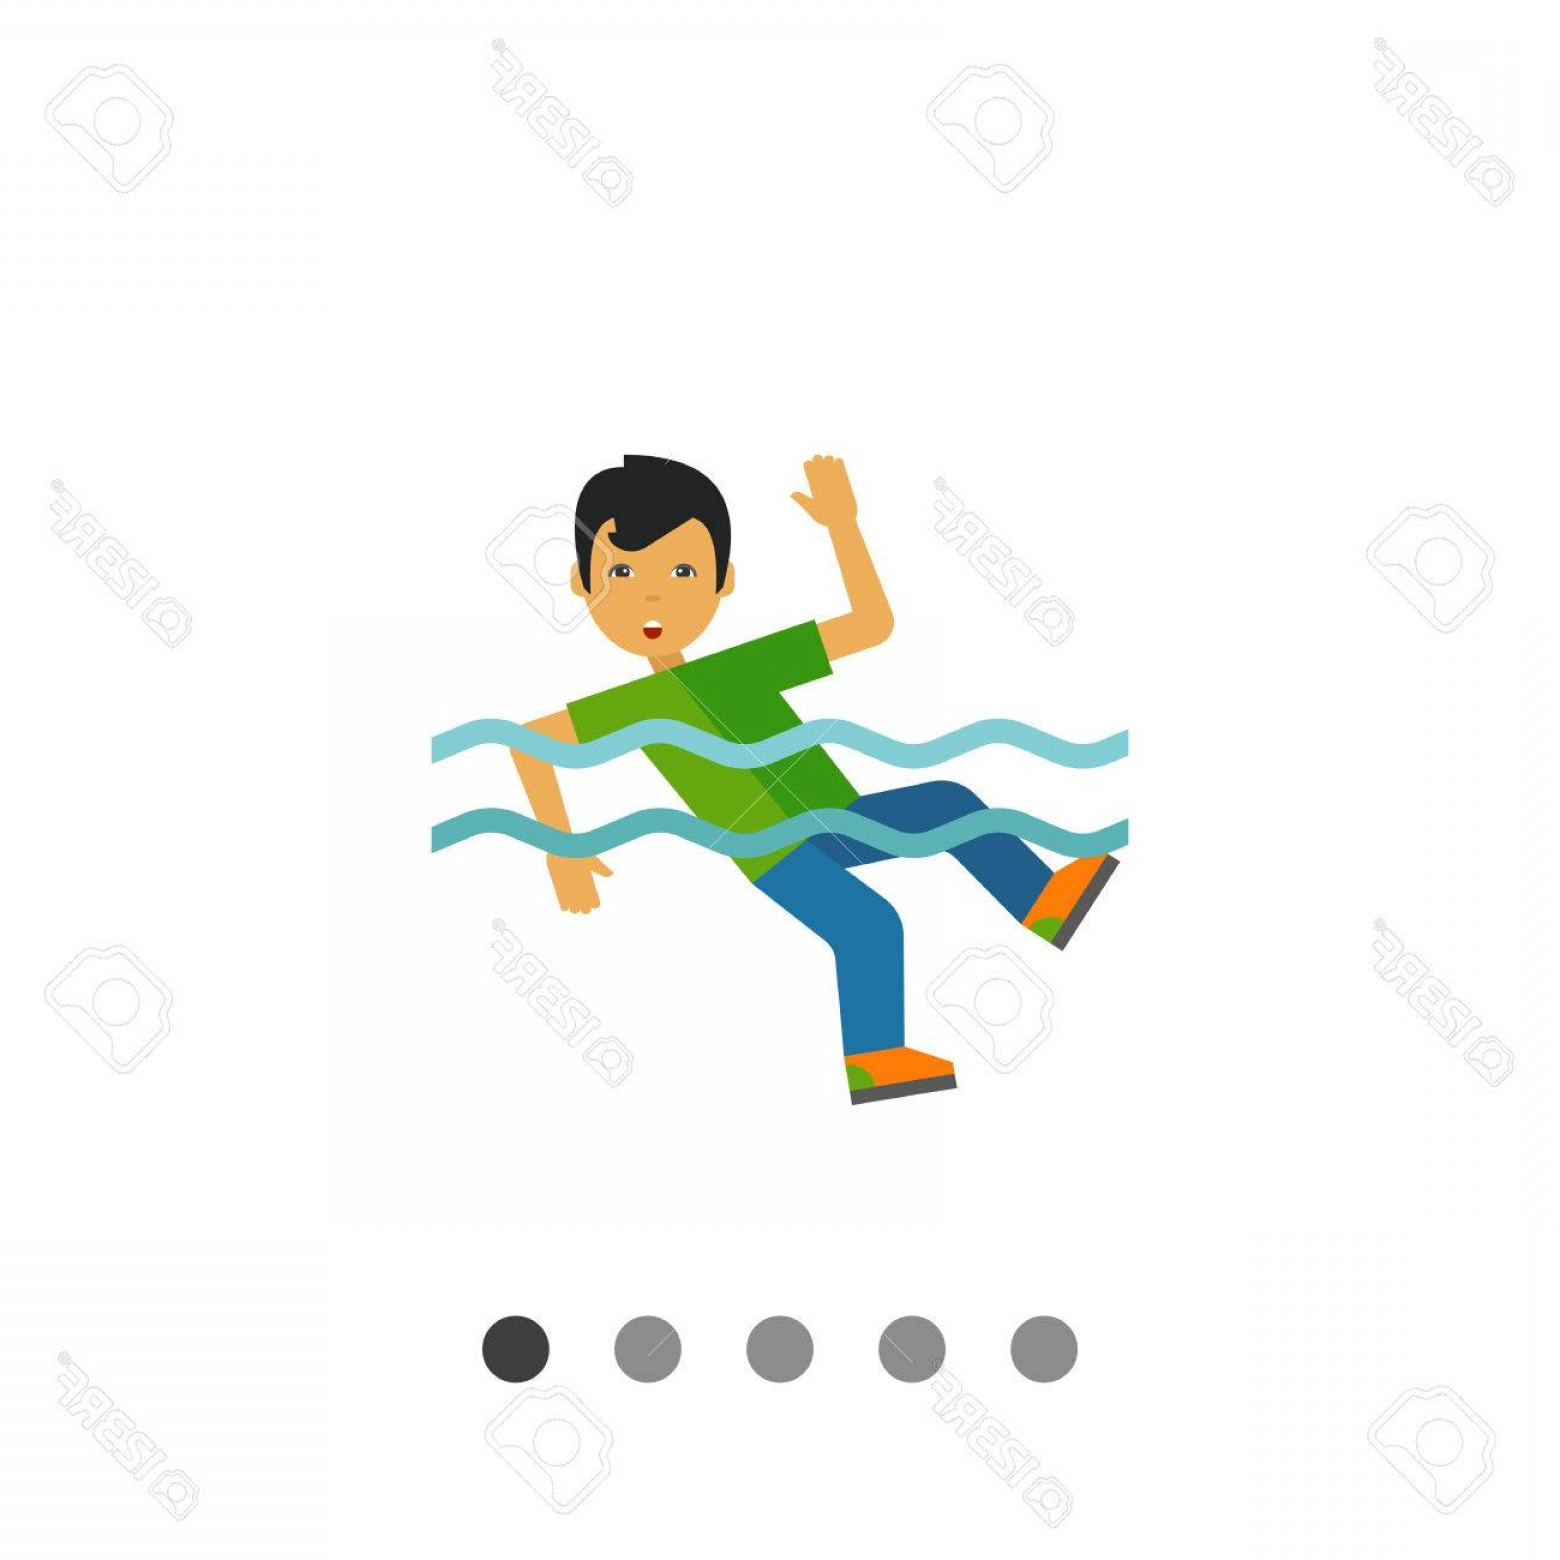 Man Drowning Vector: Photostock Vector Flat Isolated Image Of A Man Drowning In Water